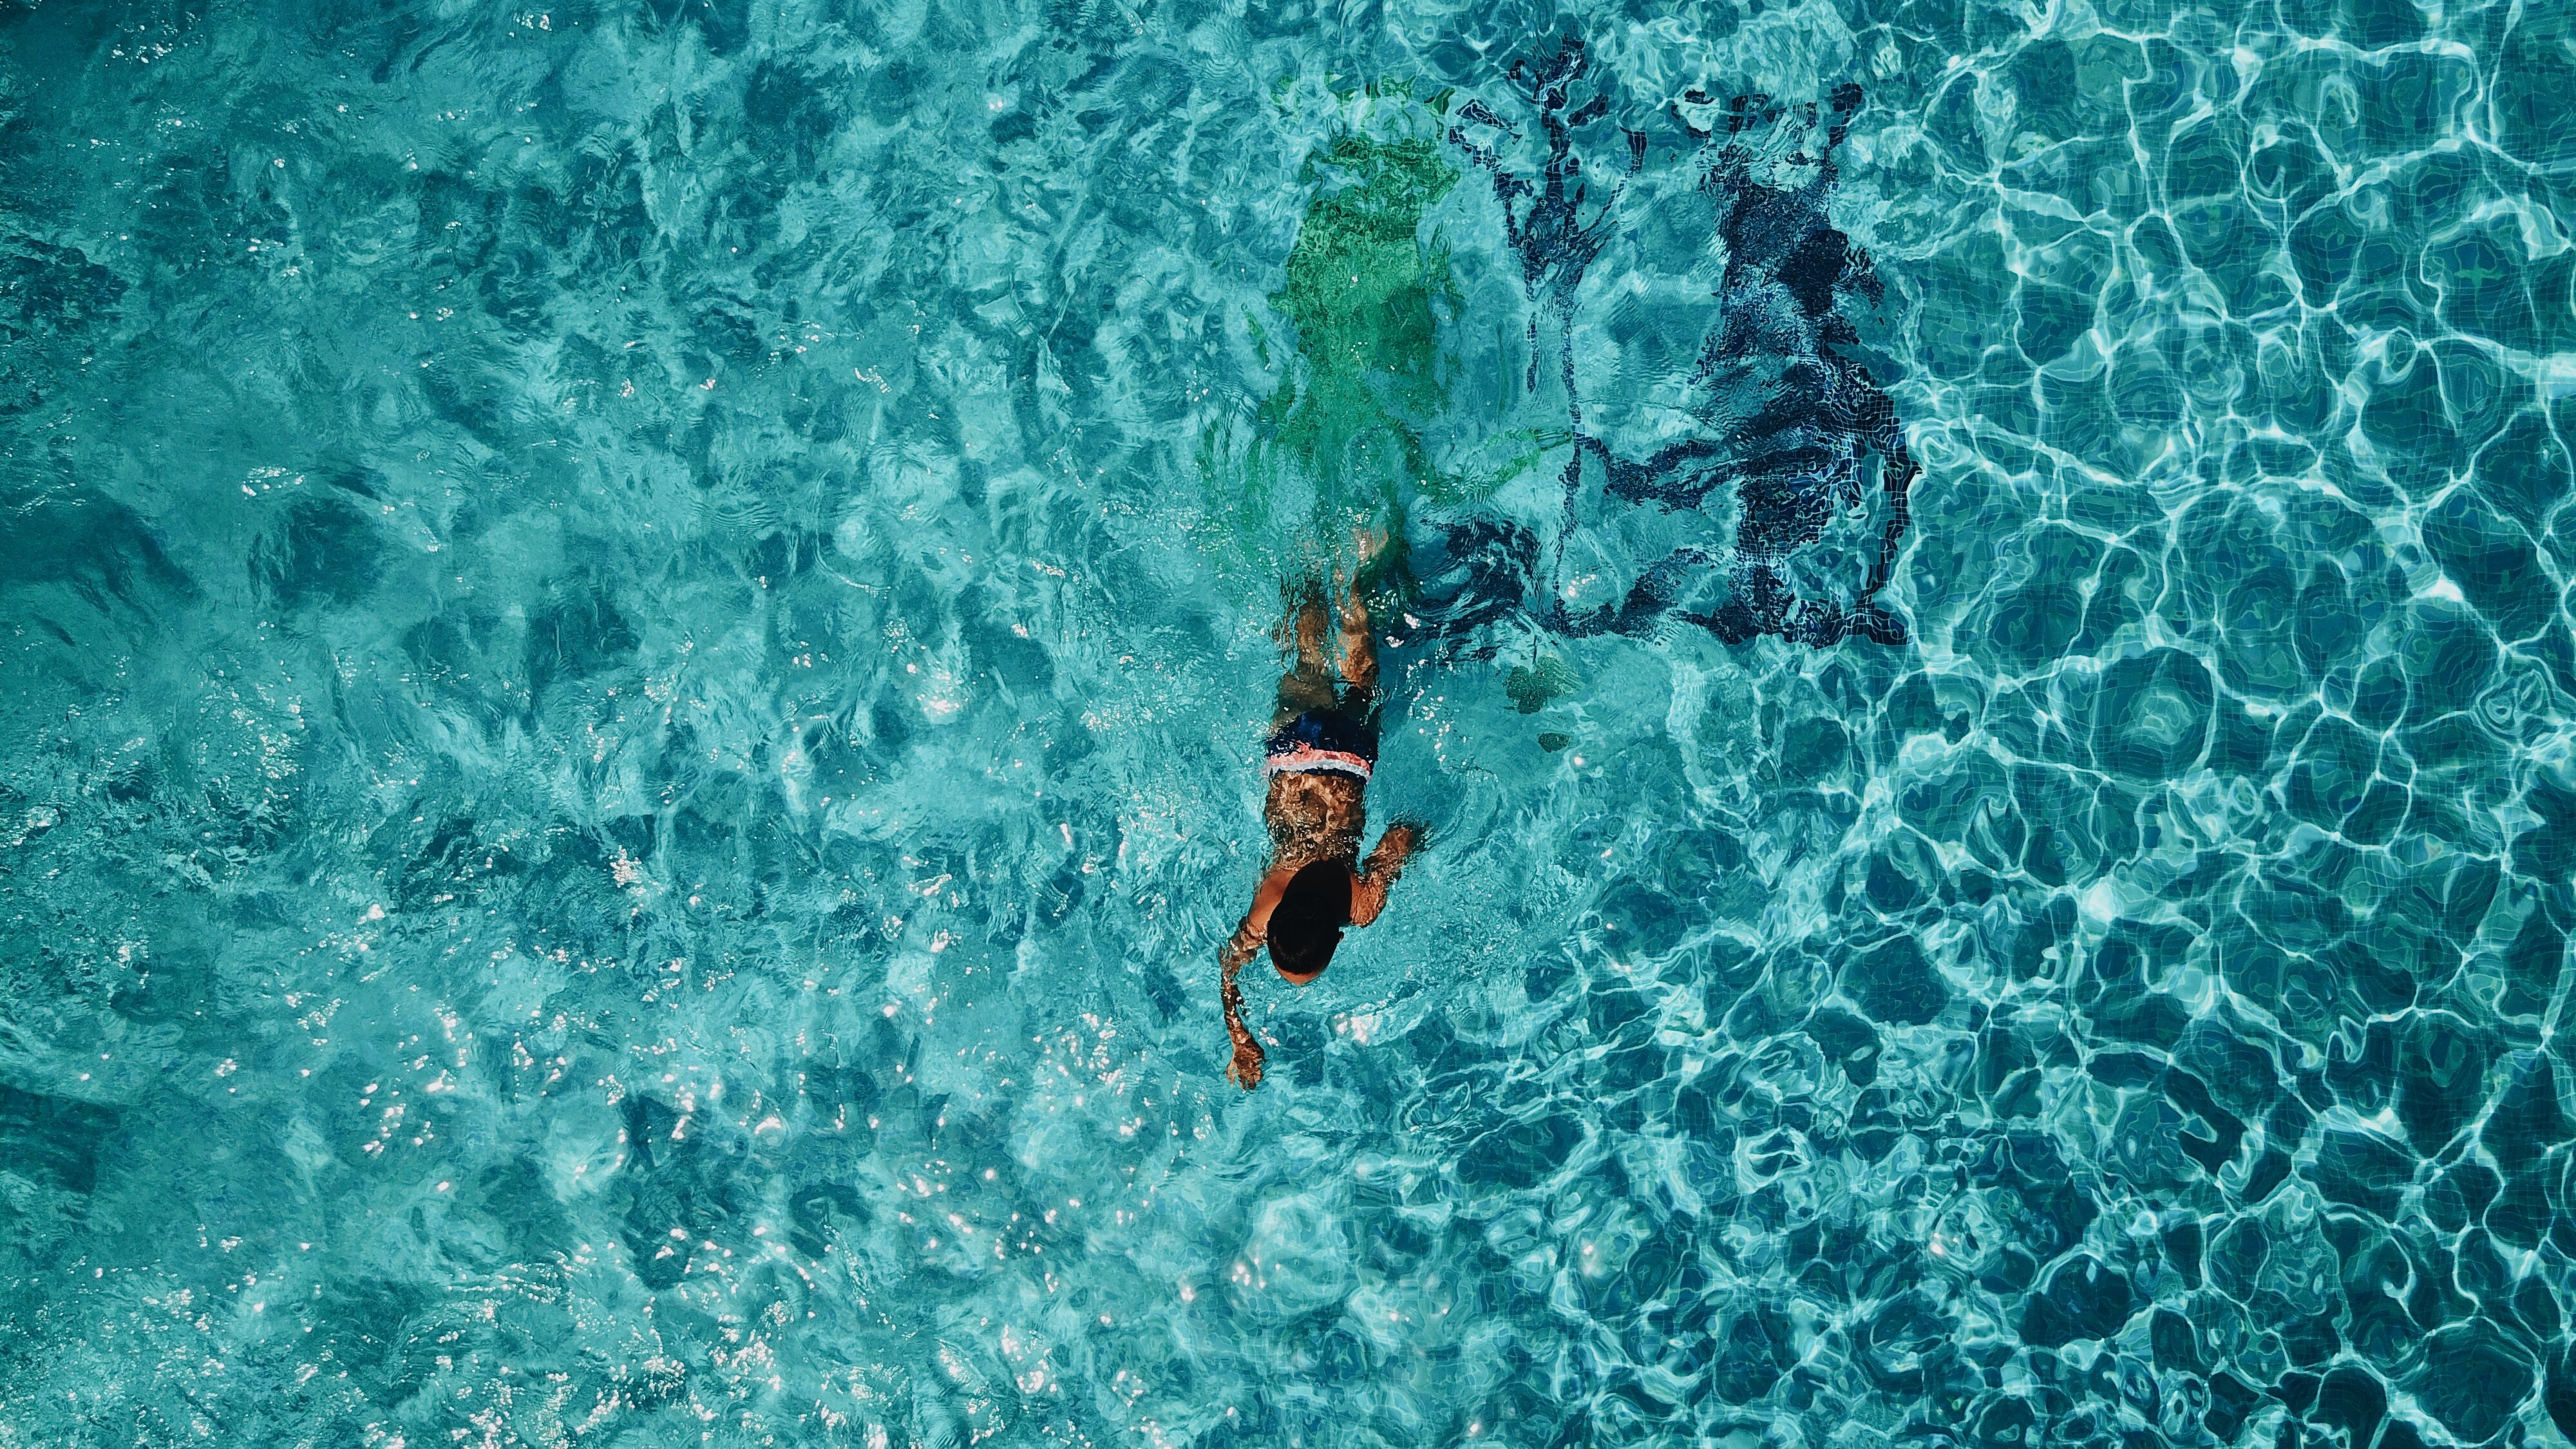 person swimming on body of water